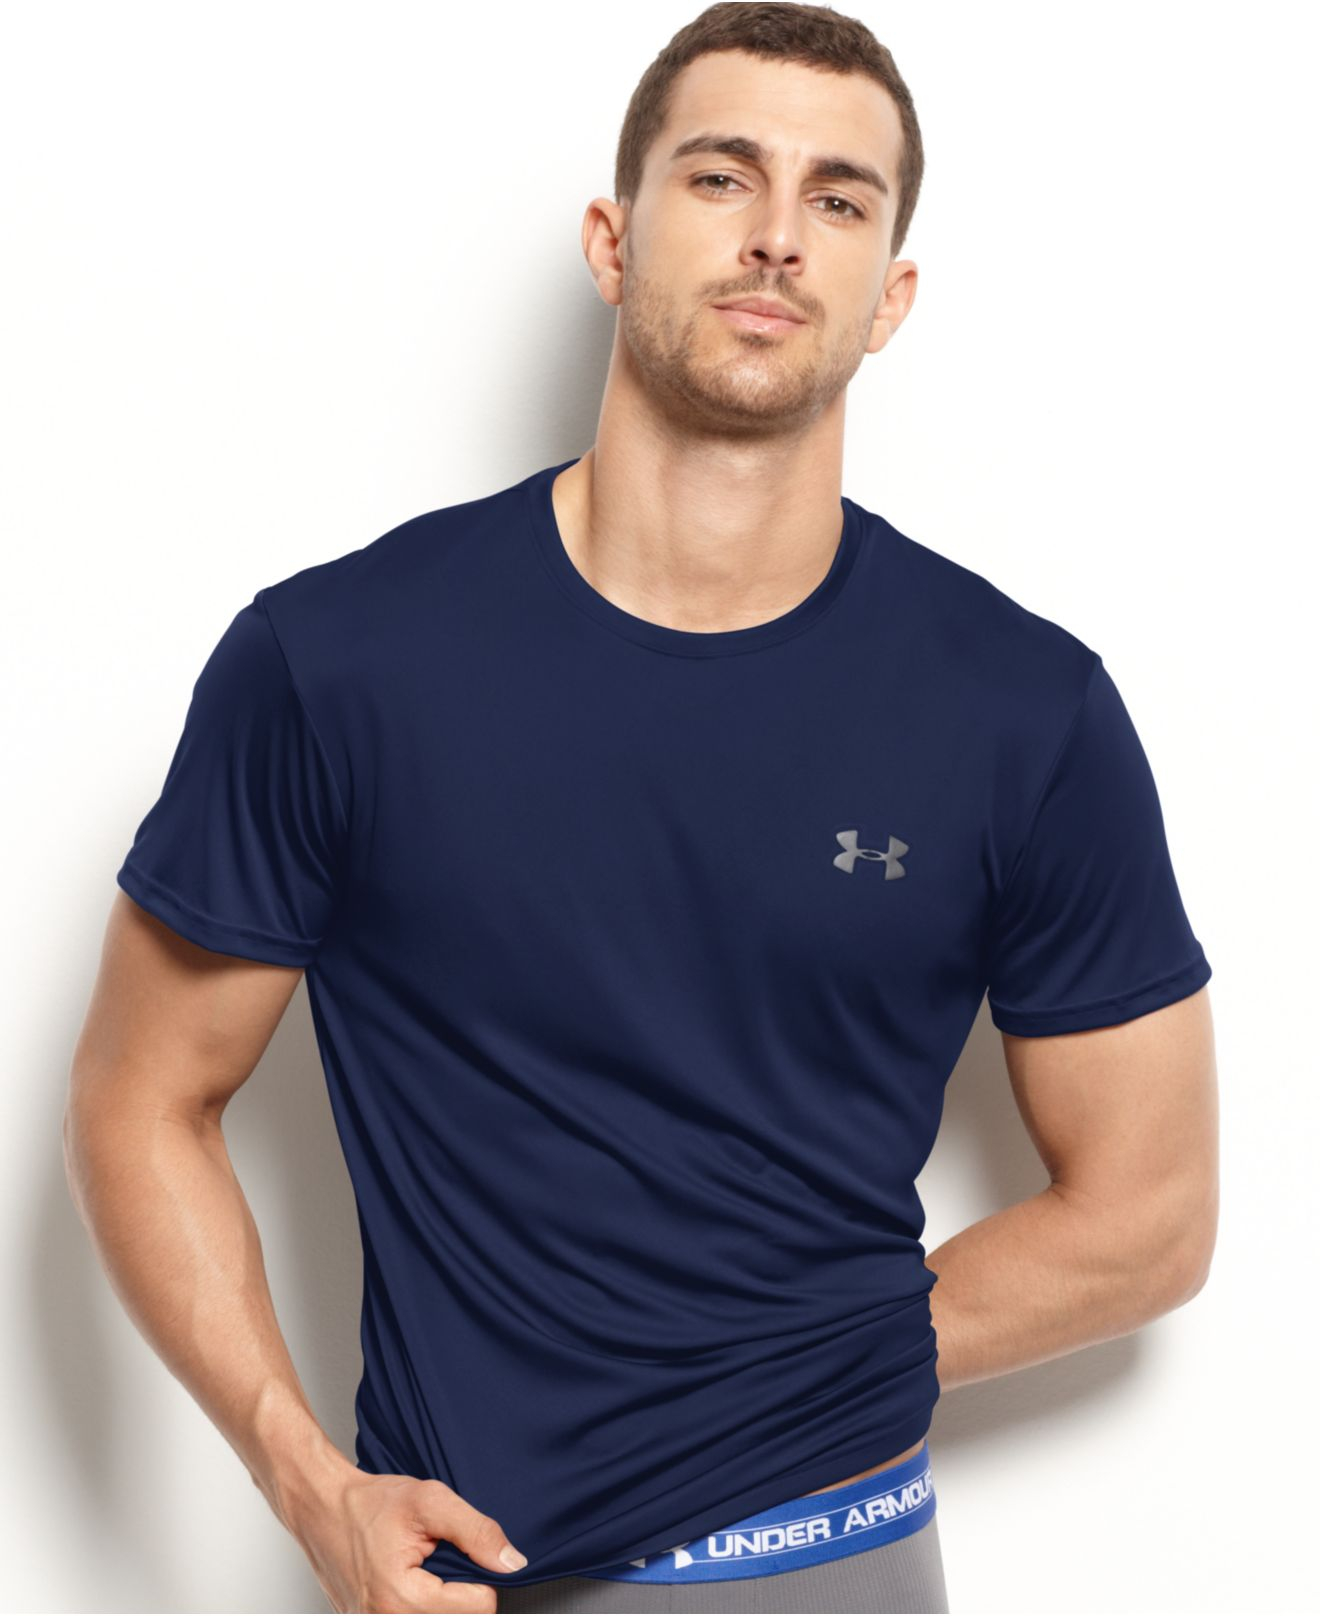 a700d944f8 Under Armour Blue Men's Athletic Flyweight Performance Short-sleeve  Crew-neck T-shirt for men